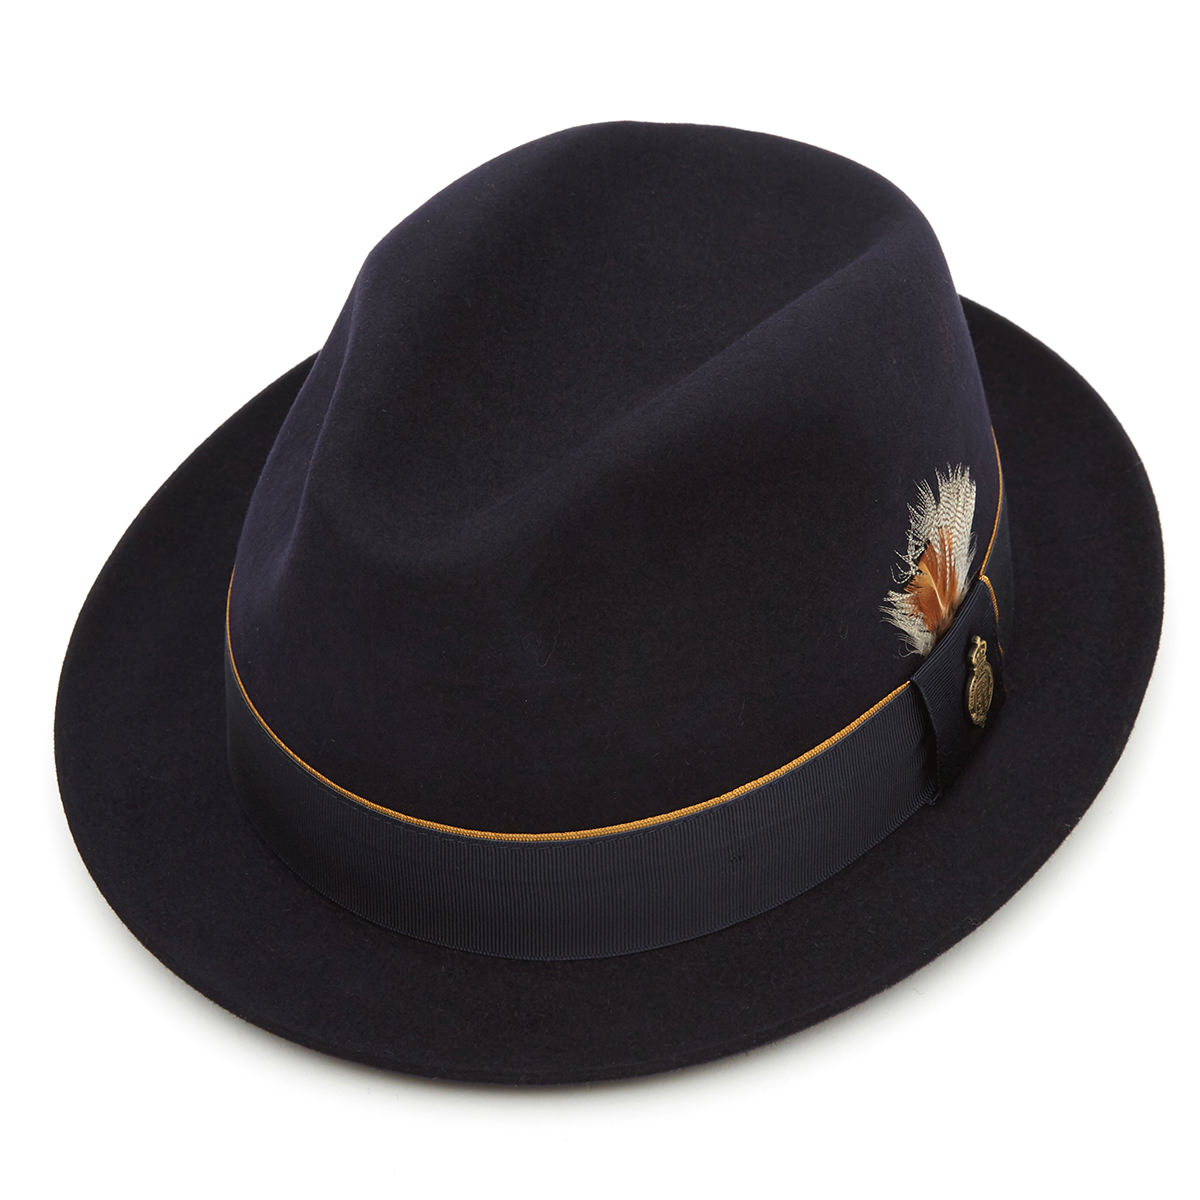 Finchley Fur Felt Trilby Hat Navy 55